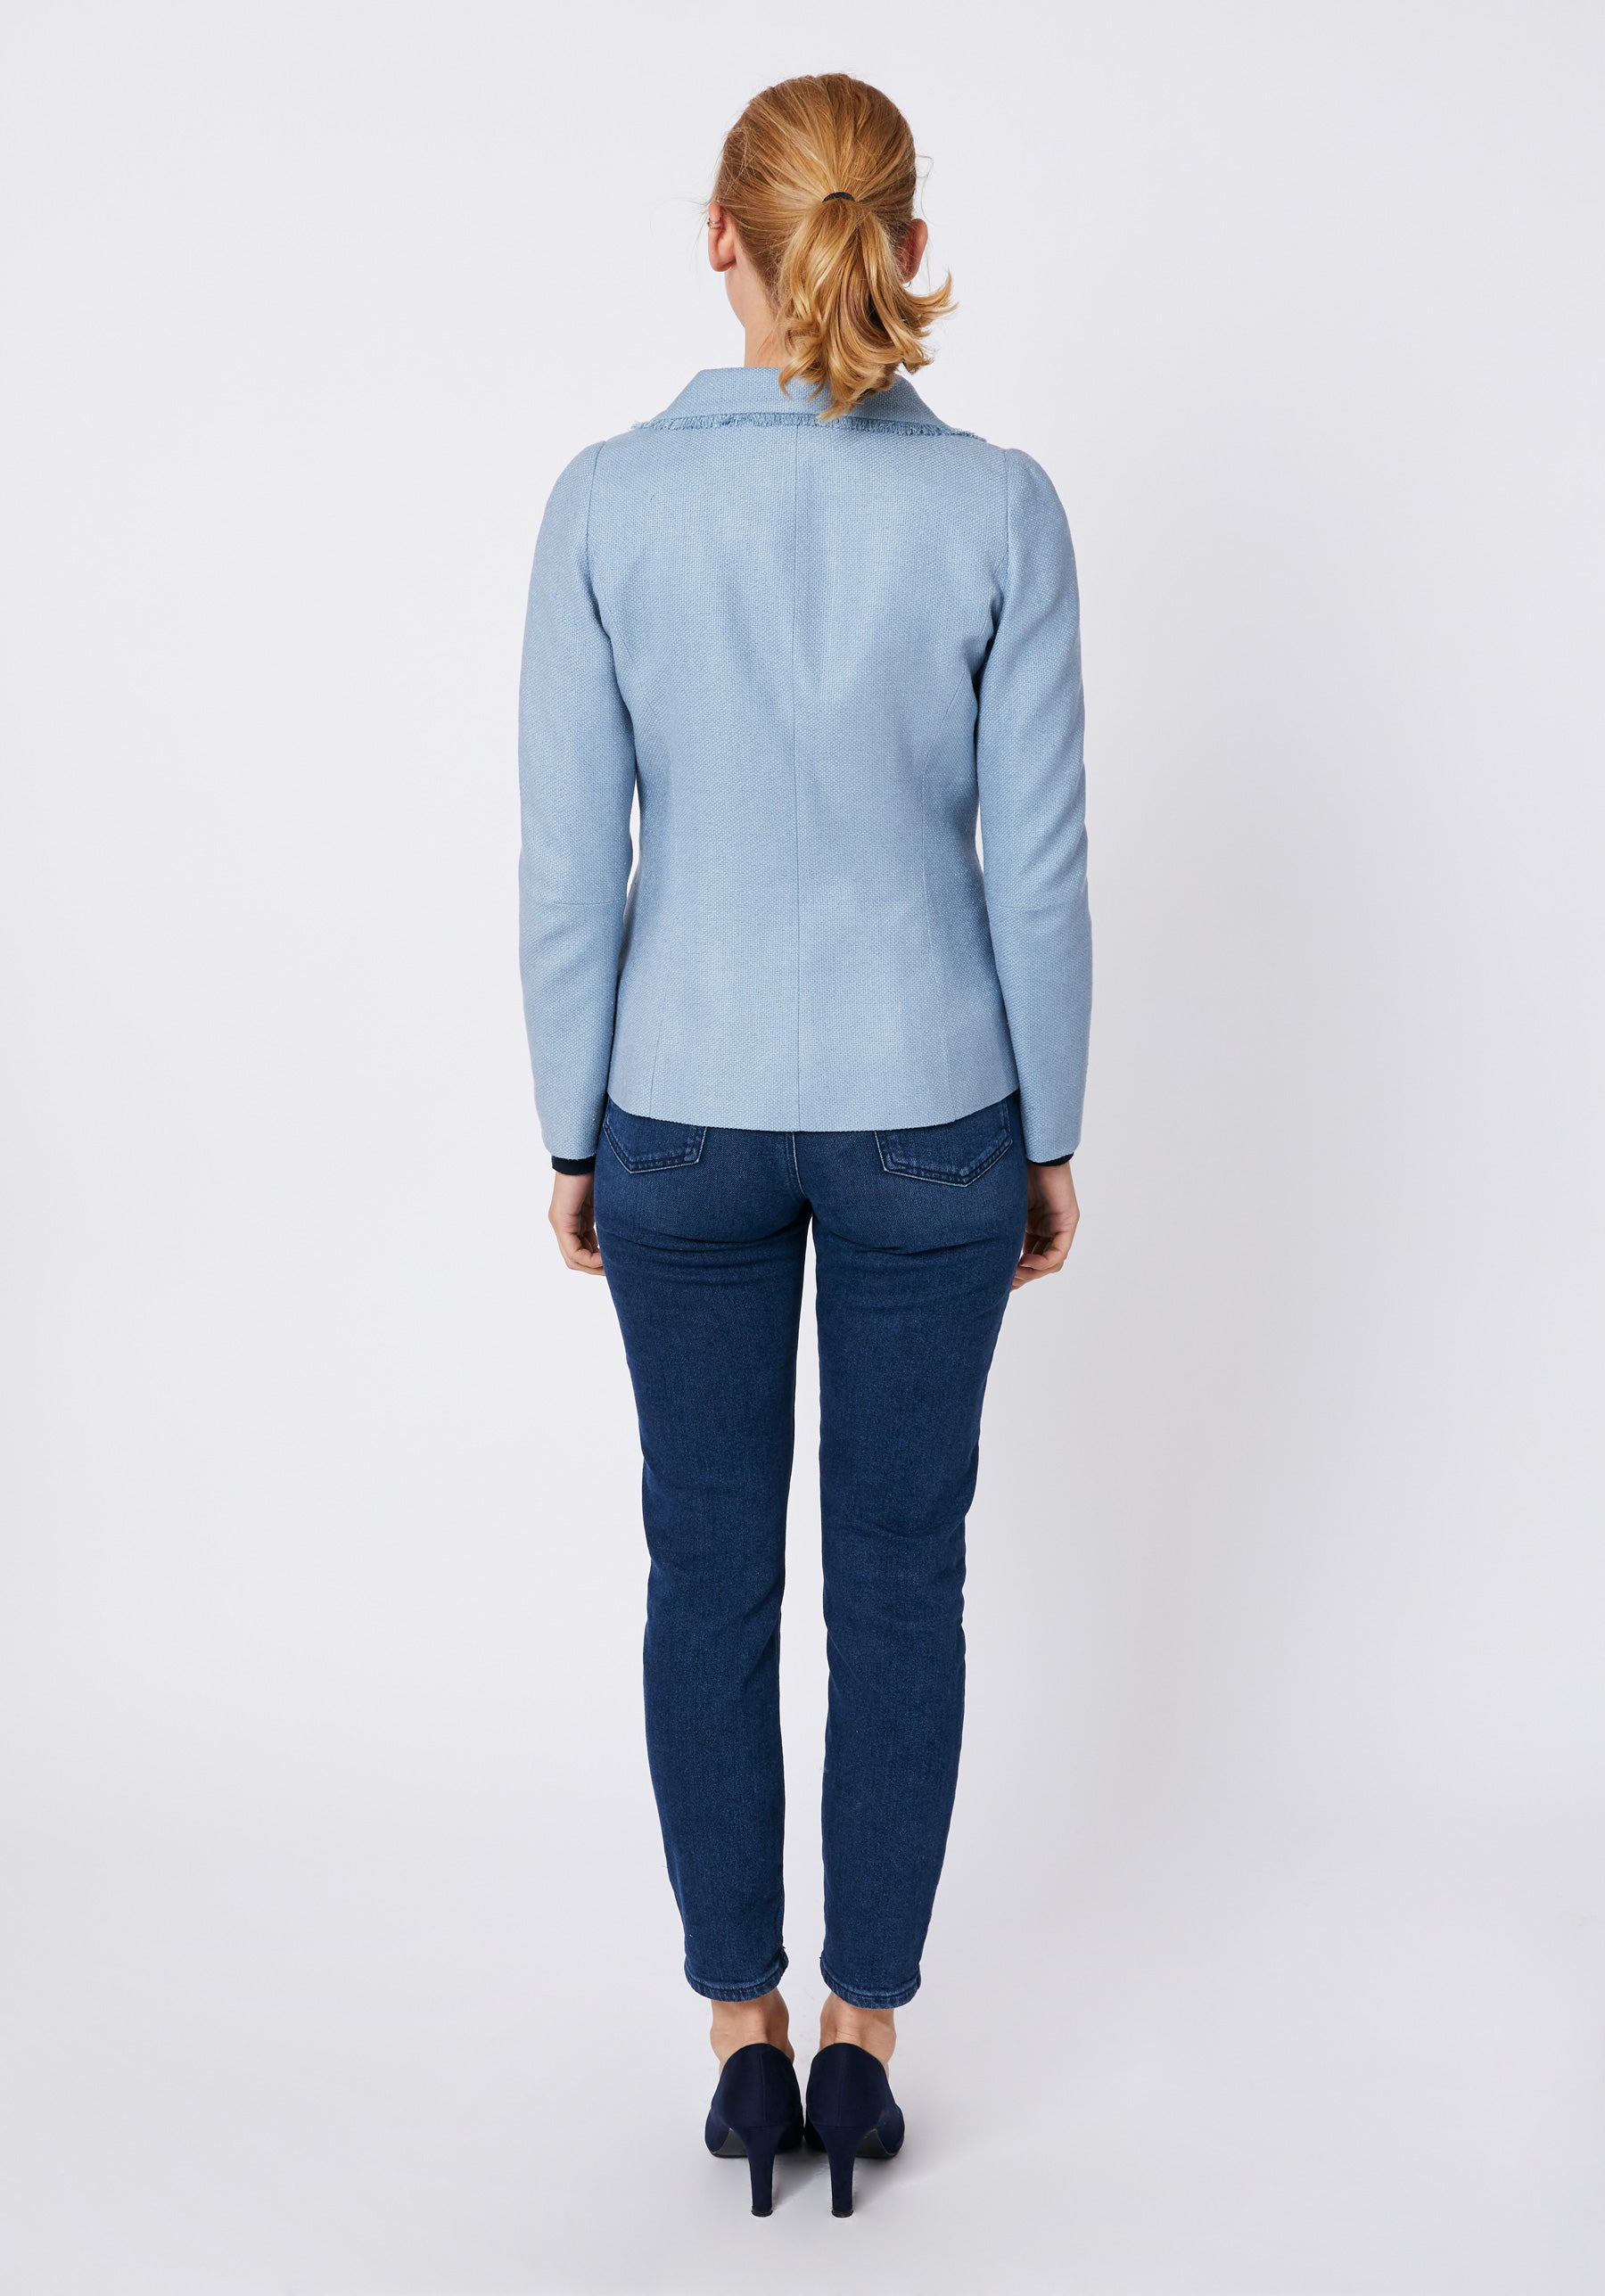 Morin Jacket in Blue Matka Silk